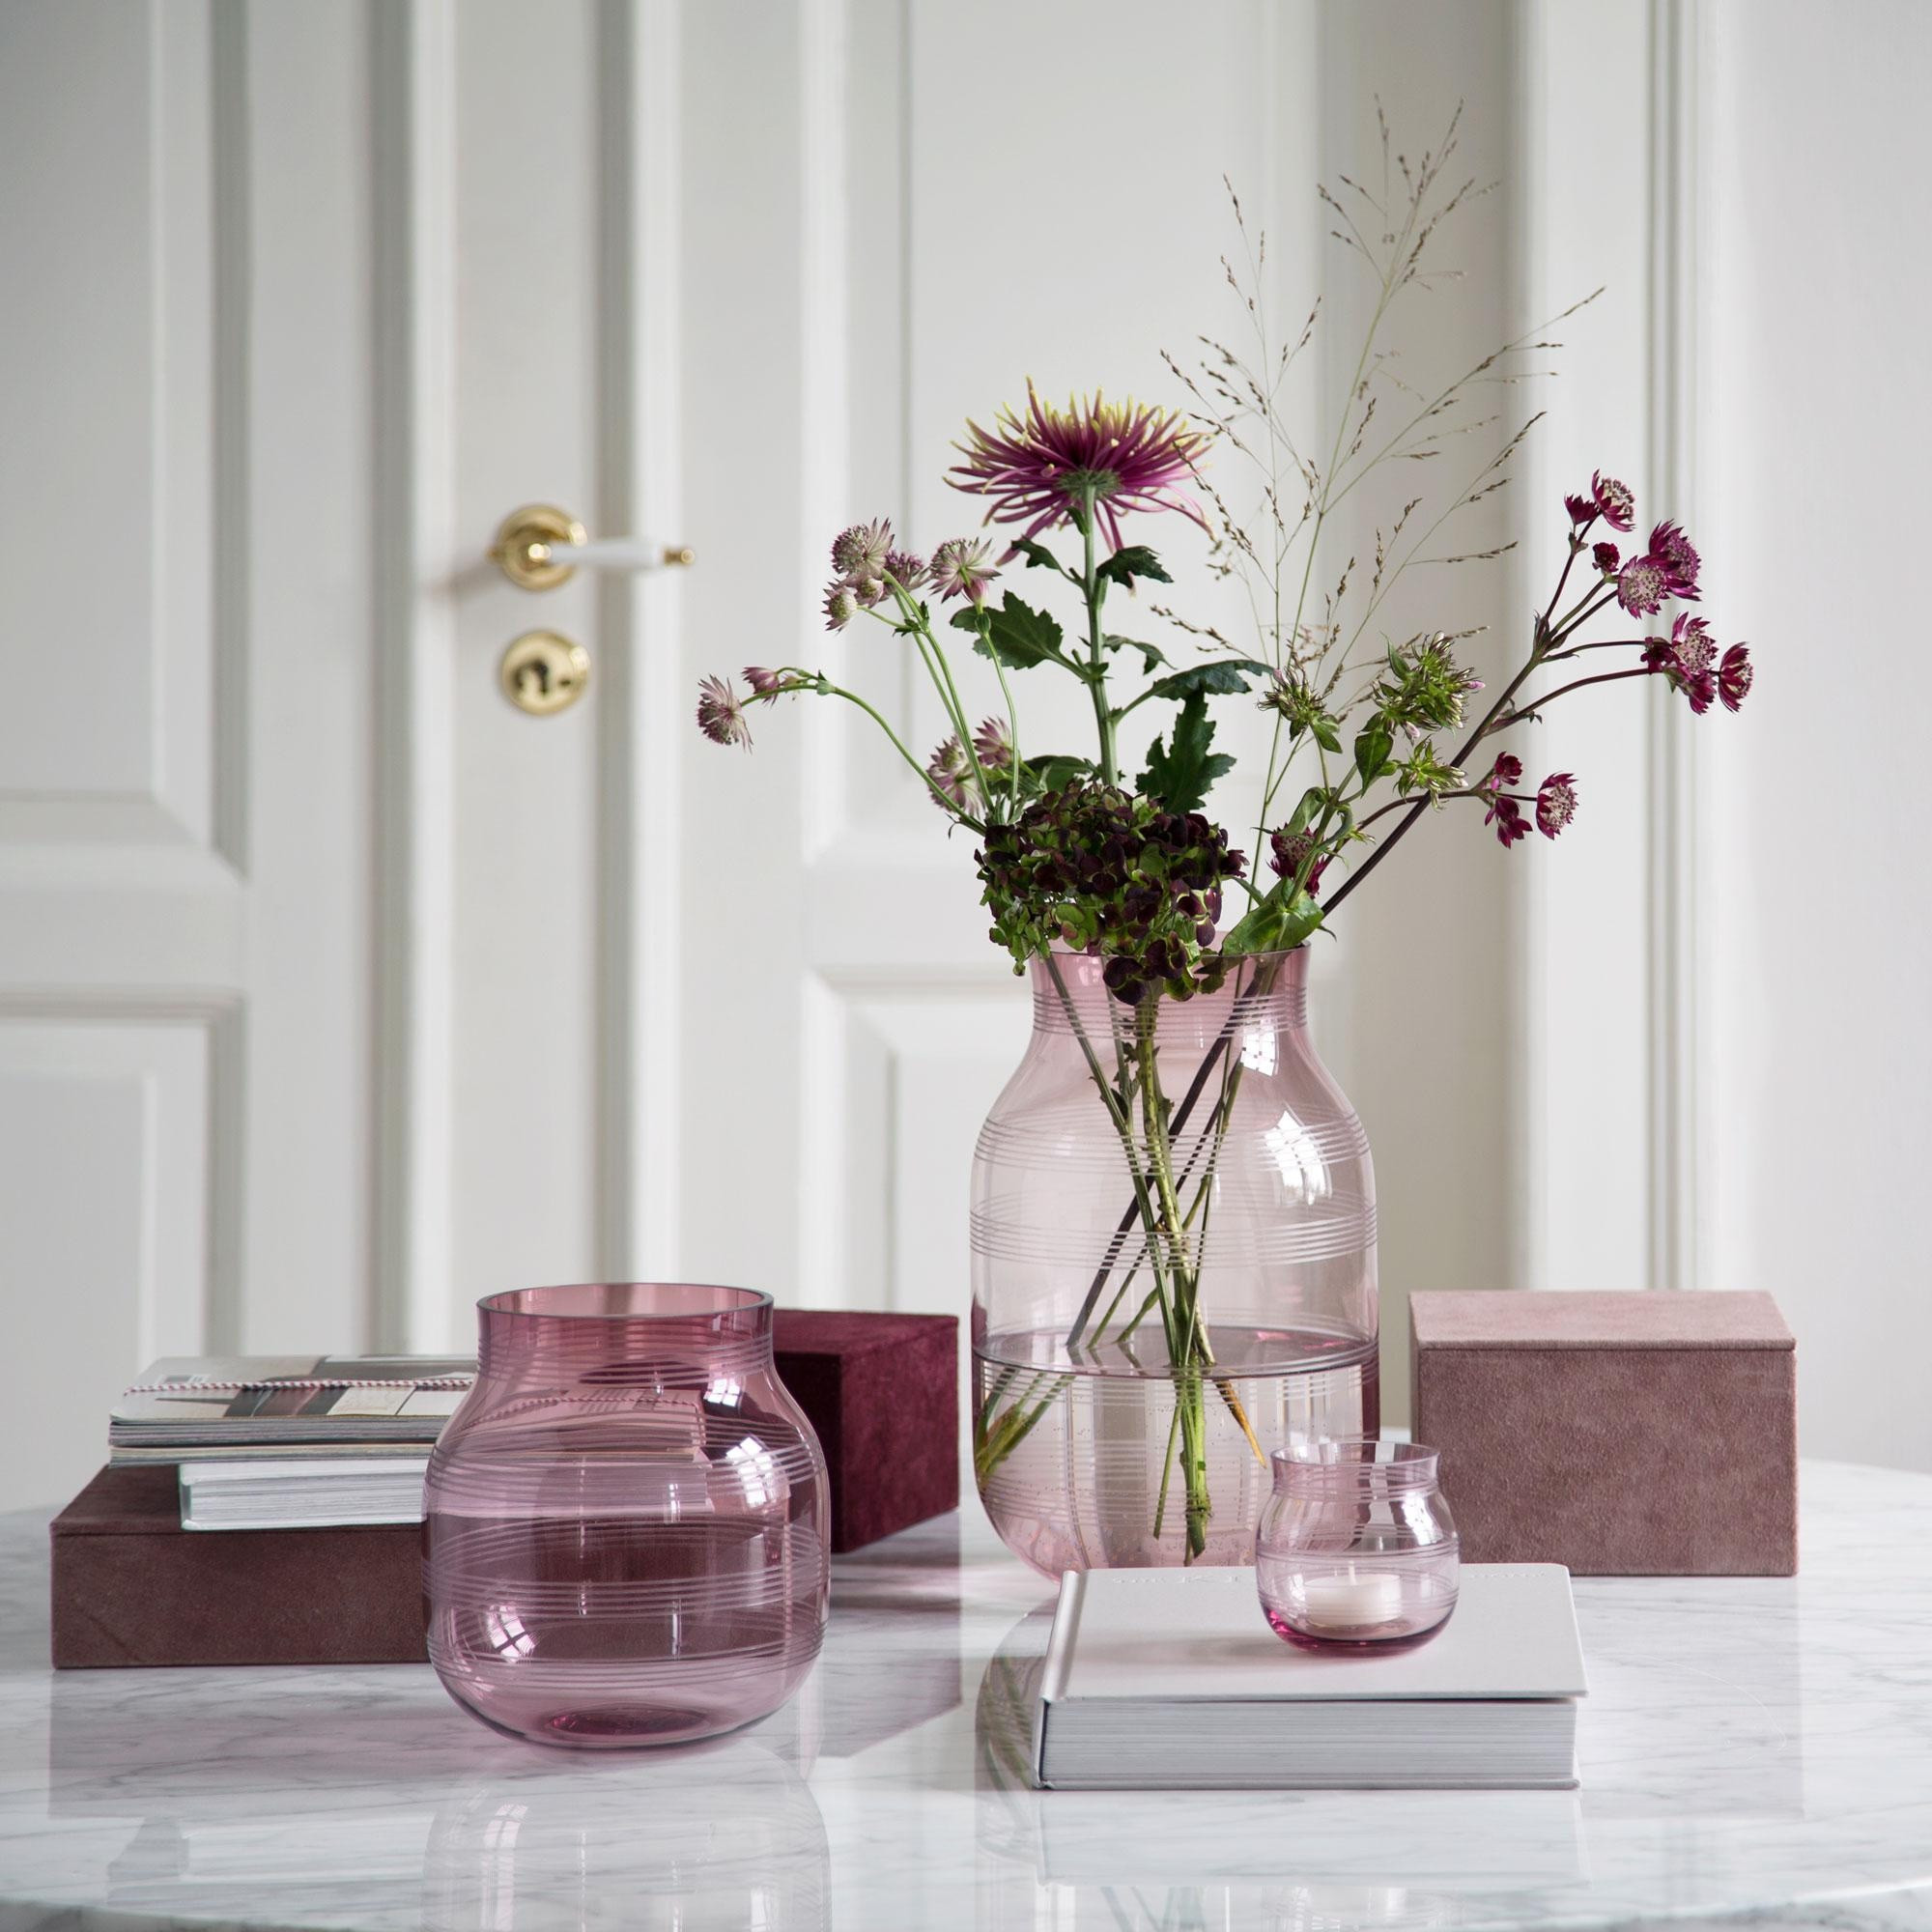 blush pink glass vase of ka¤hler omaggio glass vase h 17cm ambientedirect throughout exclusive sale only for styleclub members